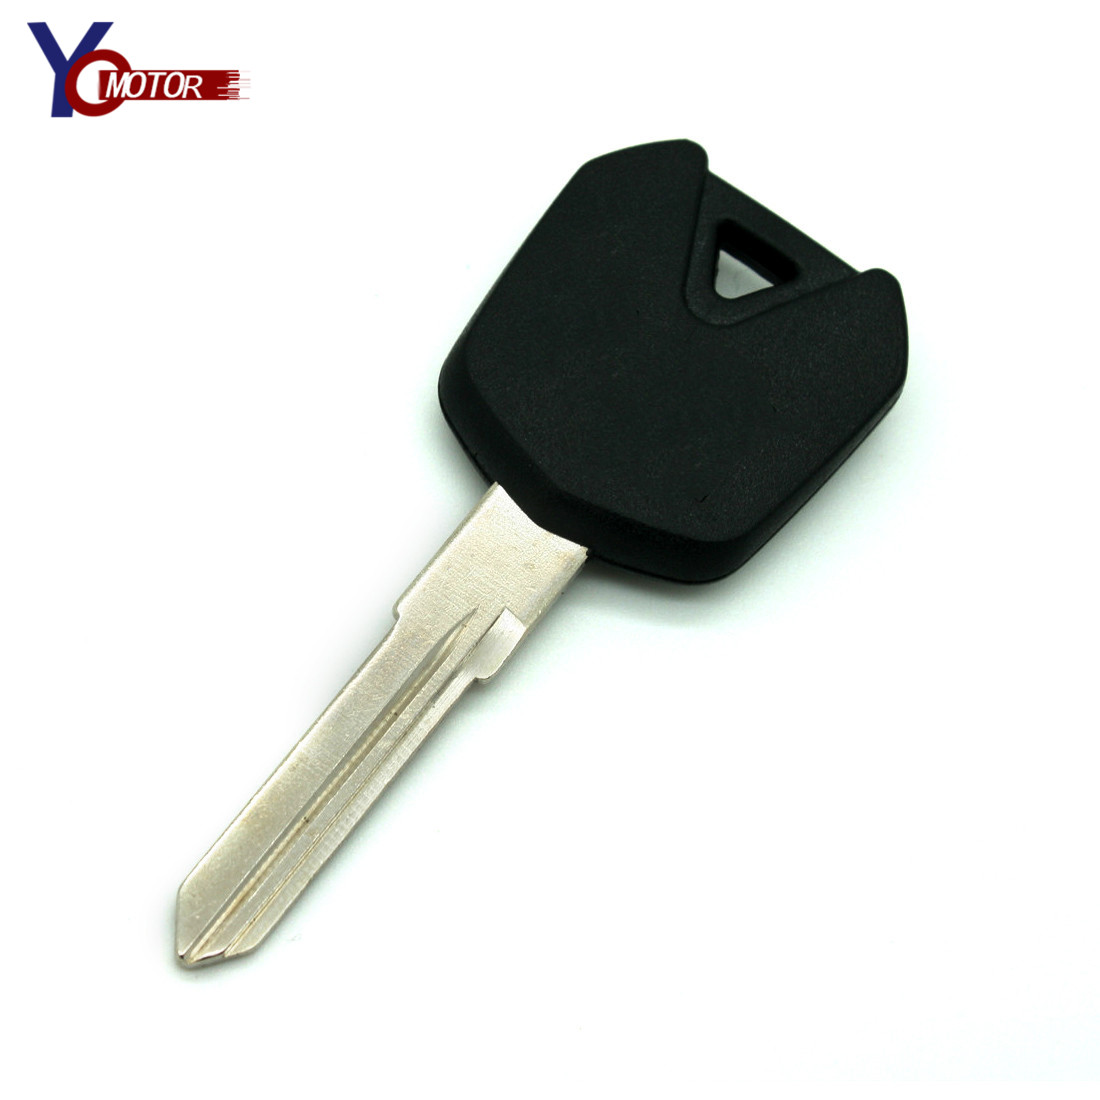 NEW Black Motorcycle Motocross Keys embryo rings Uncut Keyring MOTO accessories FOR <font><b>KAWASAKI</b></font> <font><b>NINJA</b></font> <font><b>250</b></font> ZX250R EX250 image